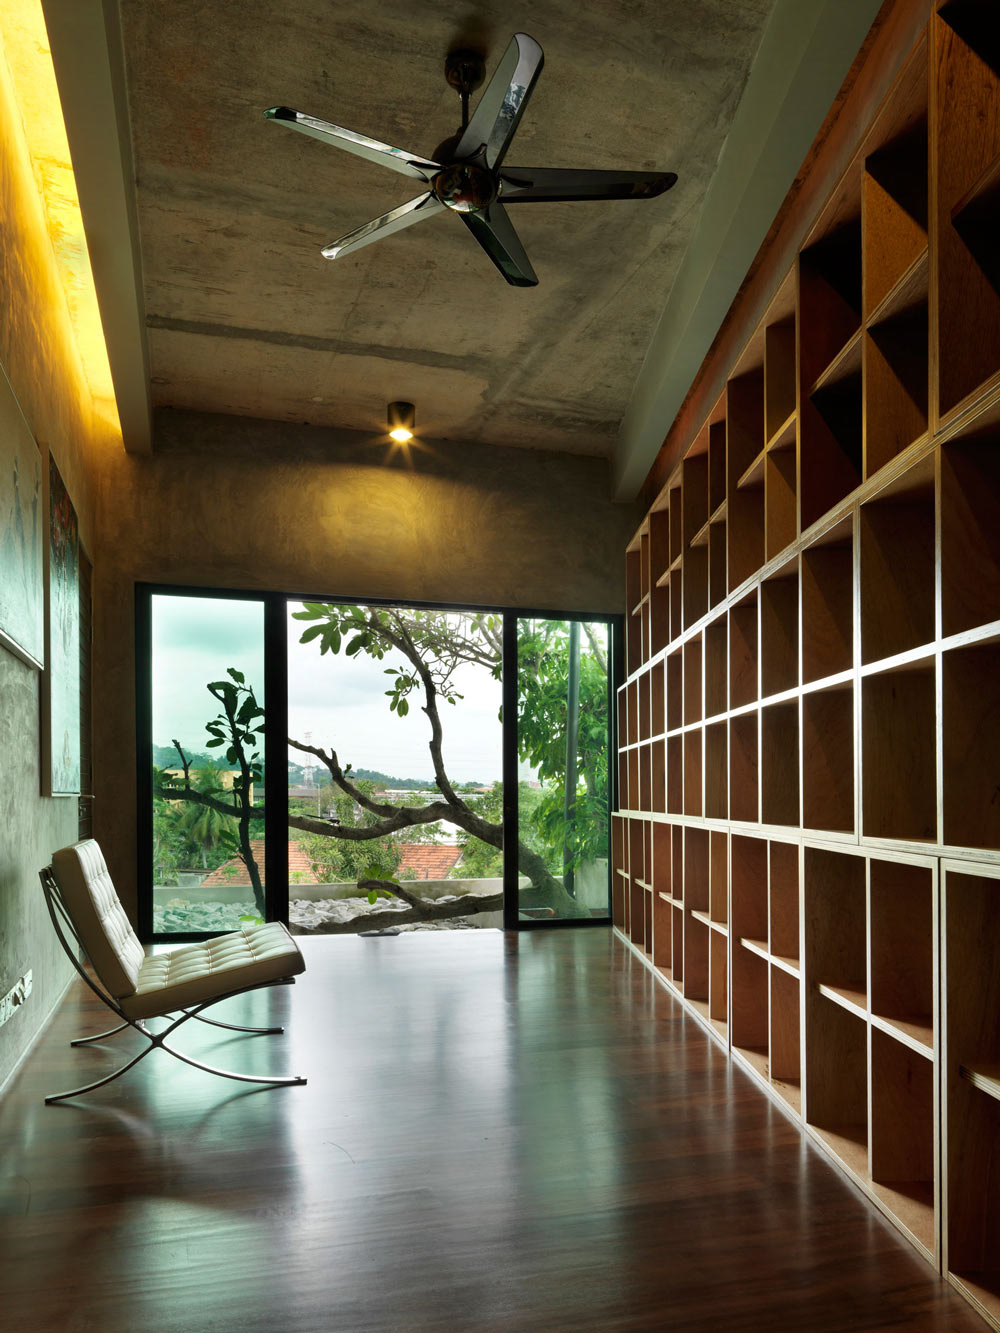 Shelving, S11 House in Selangor, Malaysia by ArchiCentre